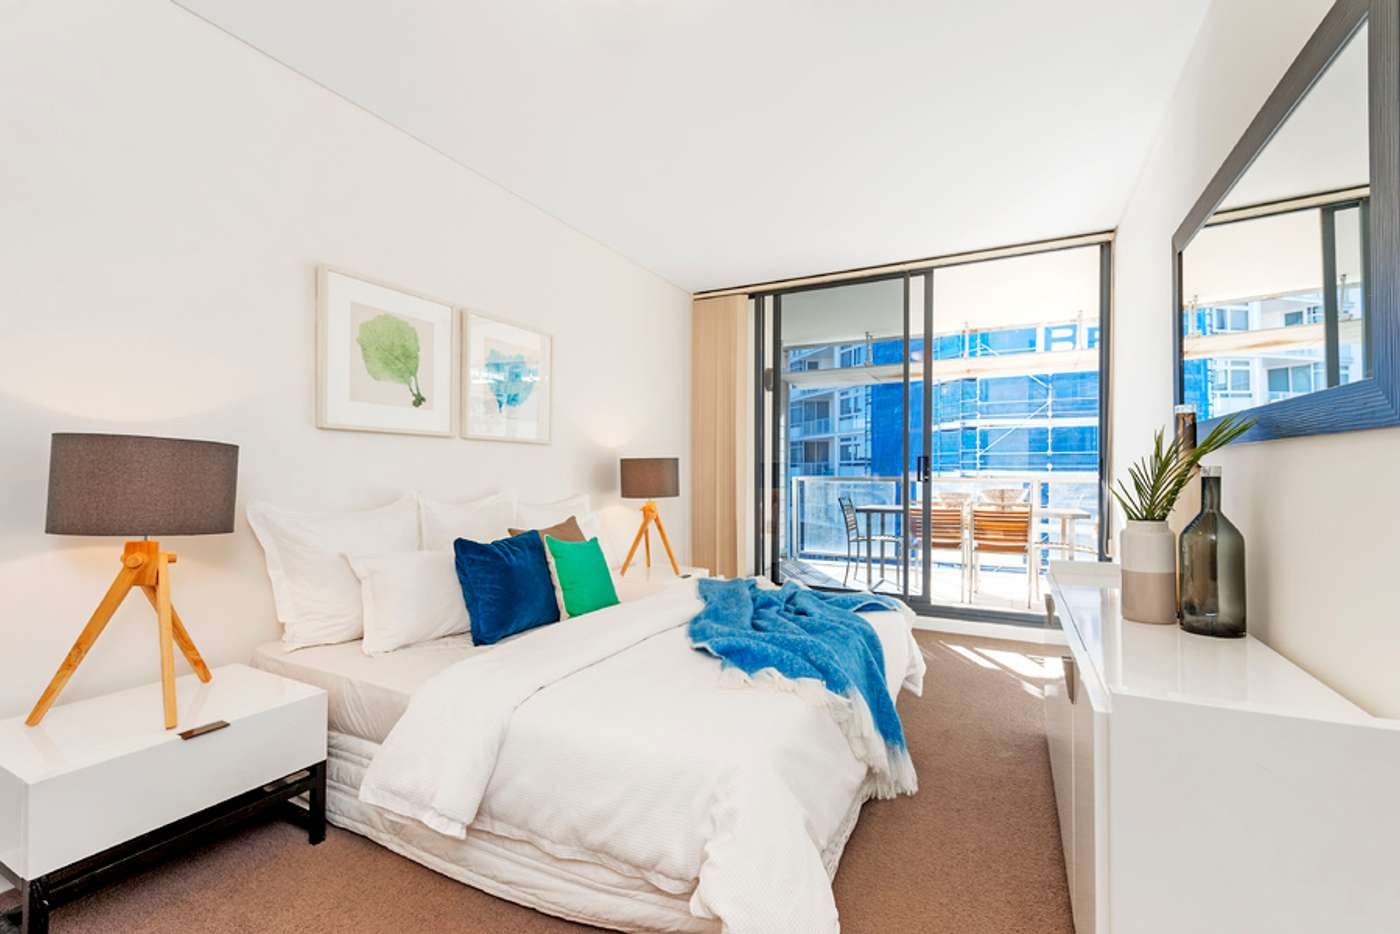 Fifth view of Homely apartment listing, 706/45 Shelley Street, Sydney NSW 2000